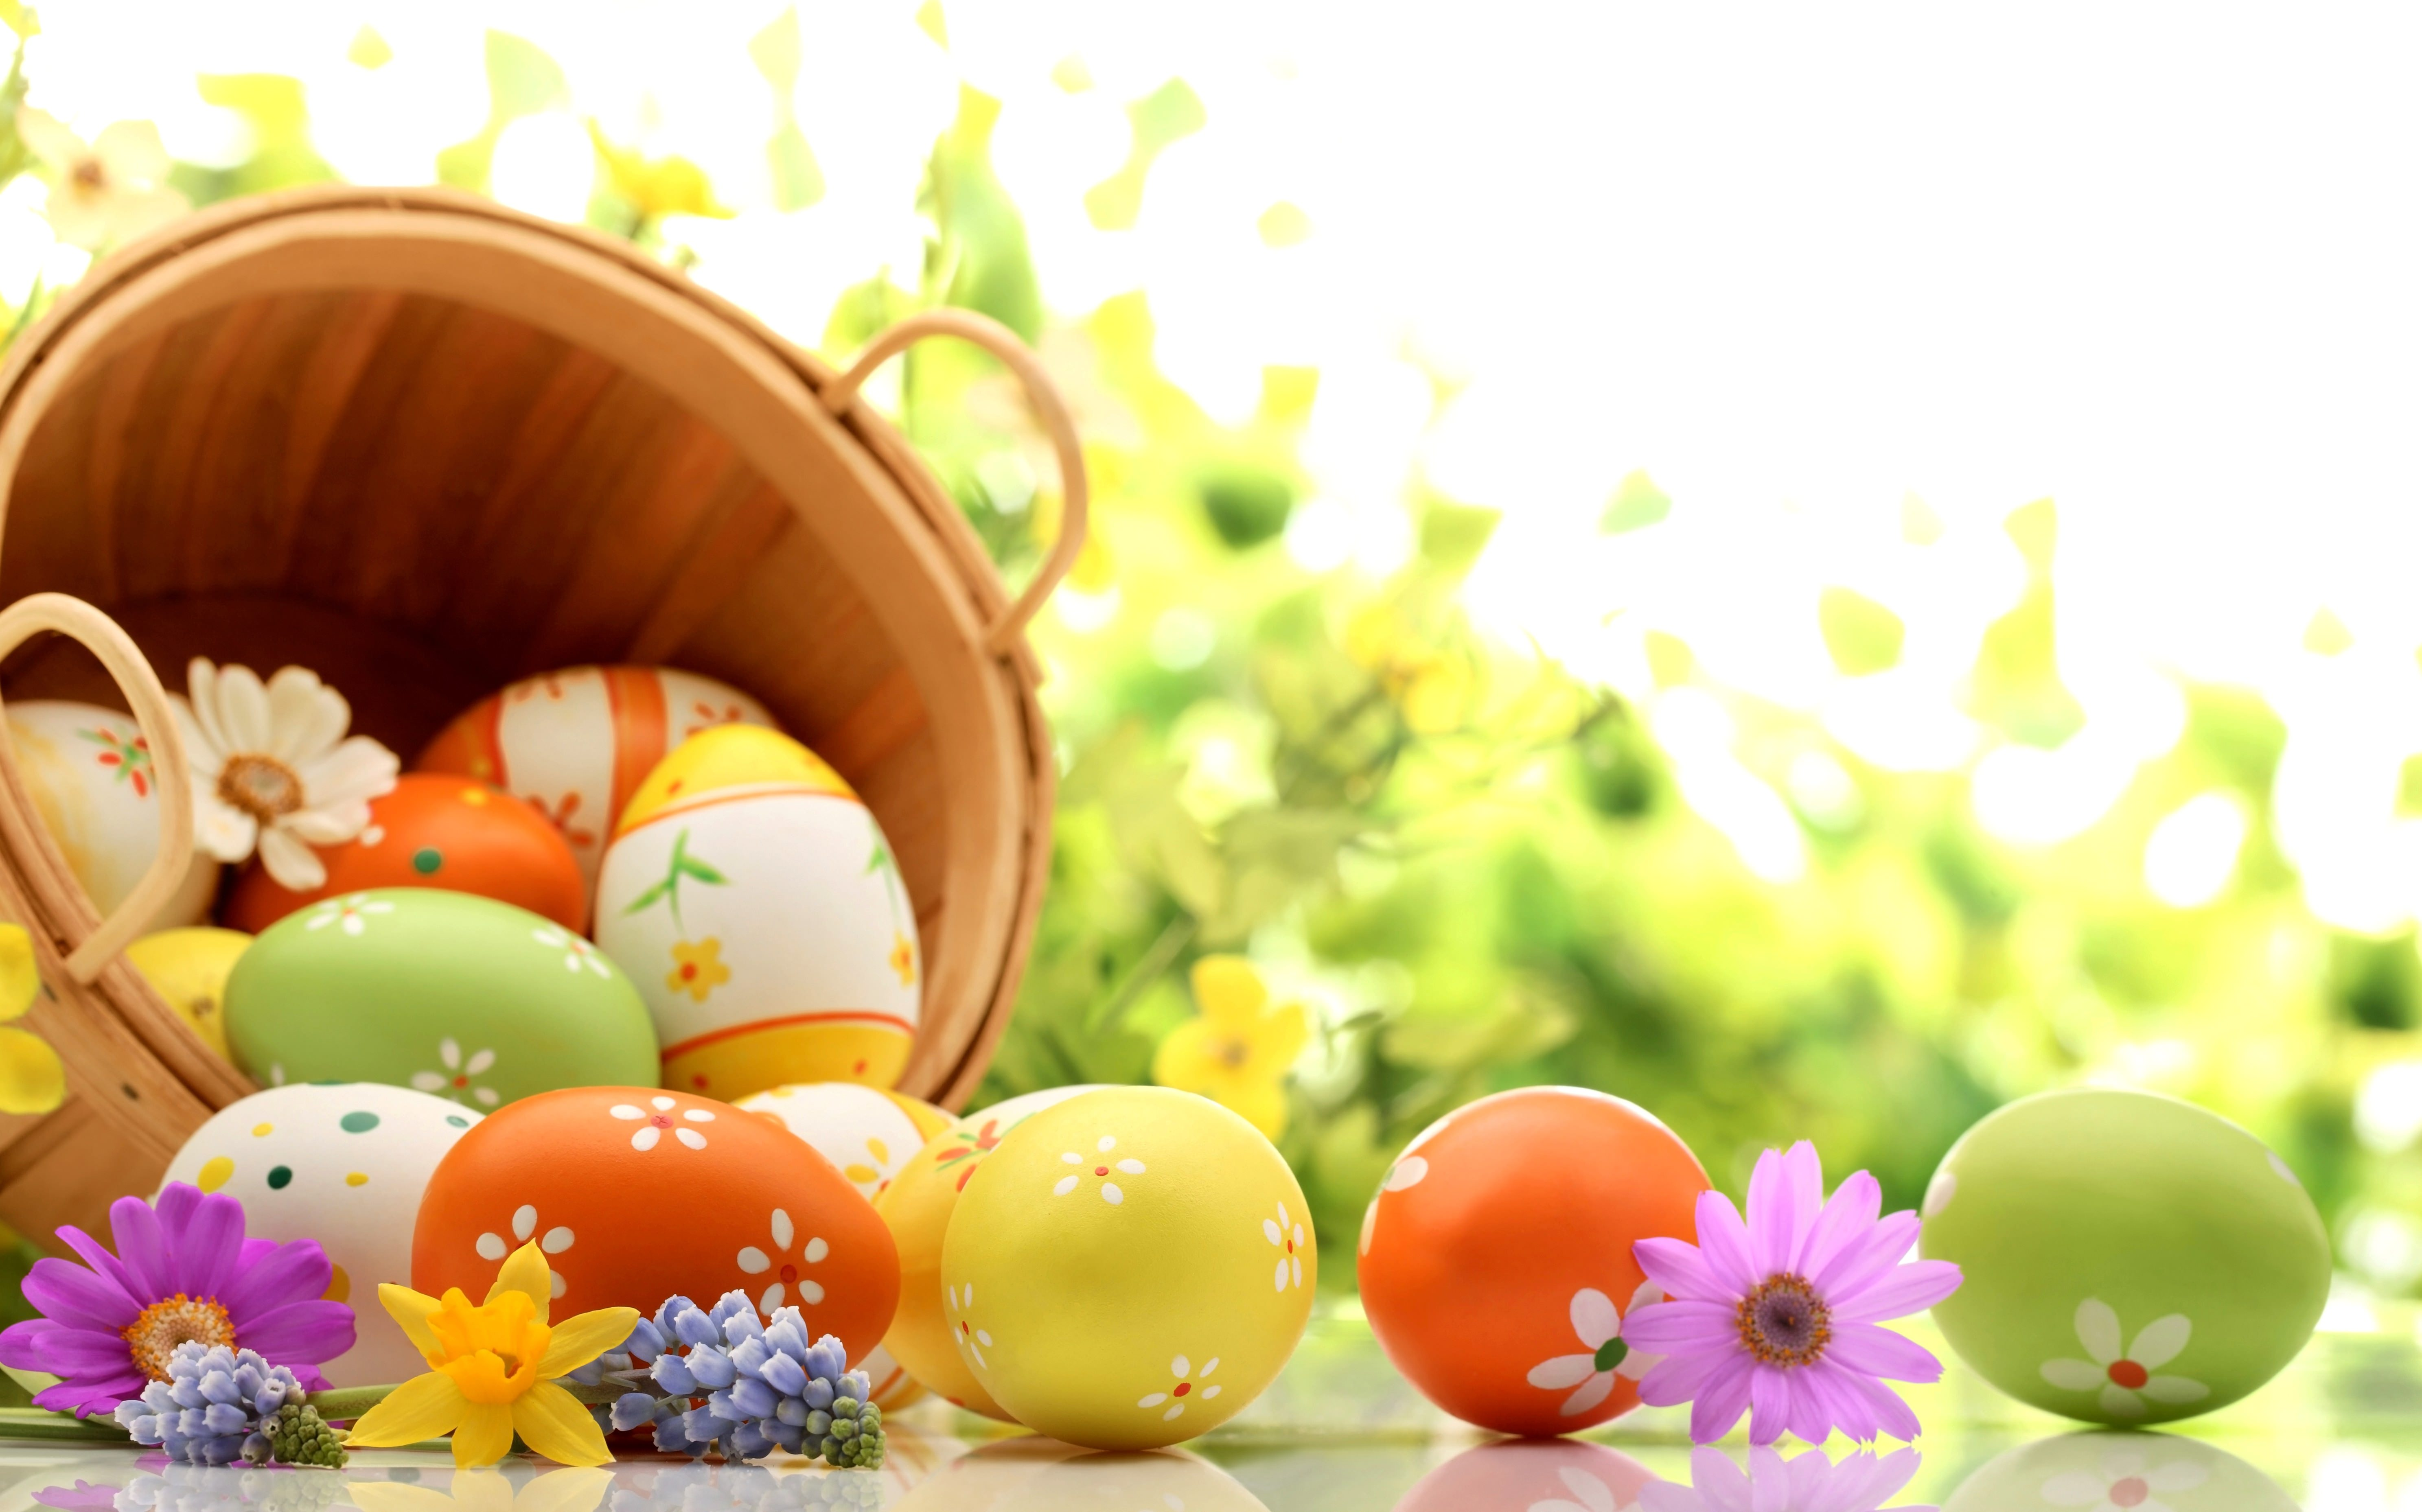 Easter,Egg,Background,Designs,Basket,Flowers,